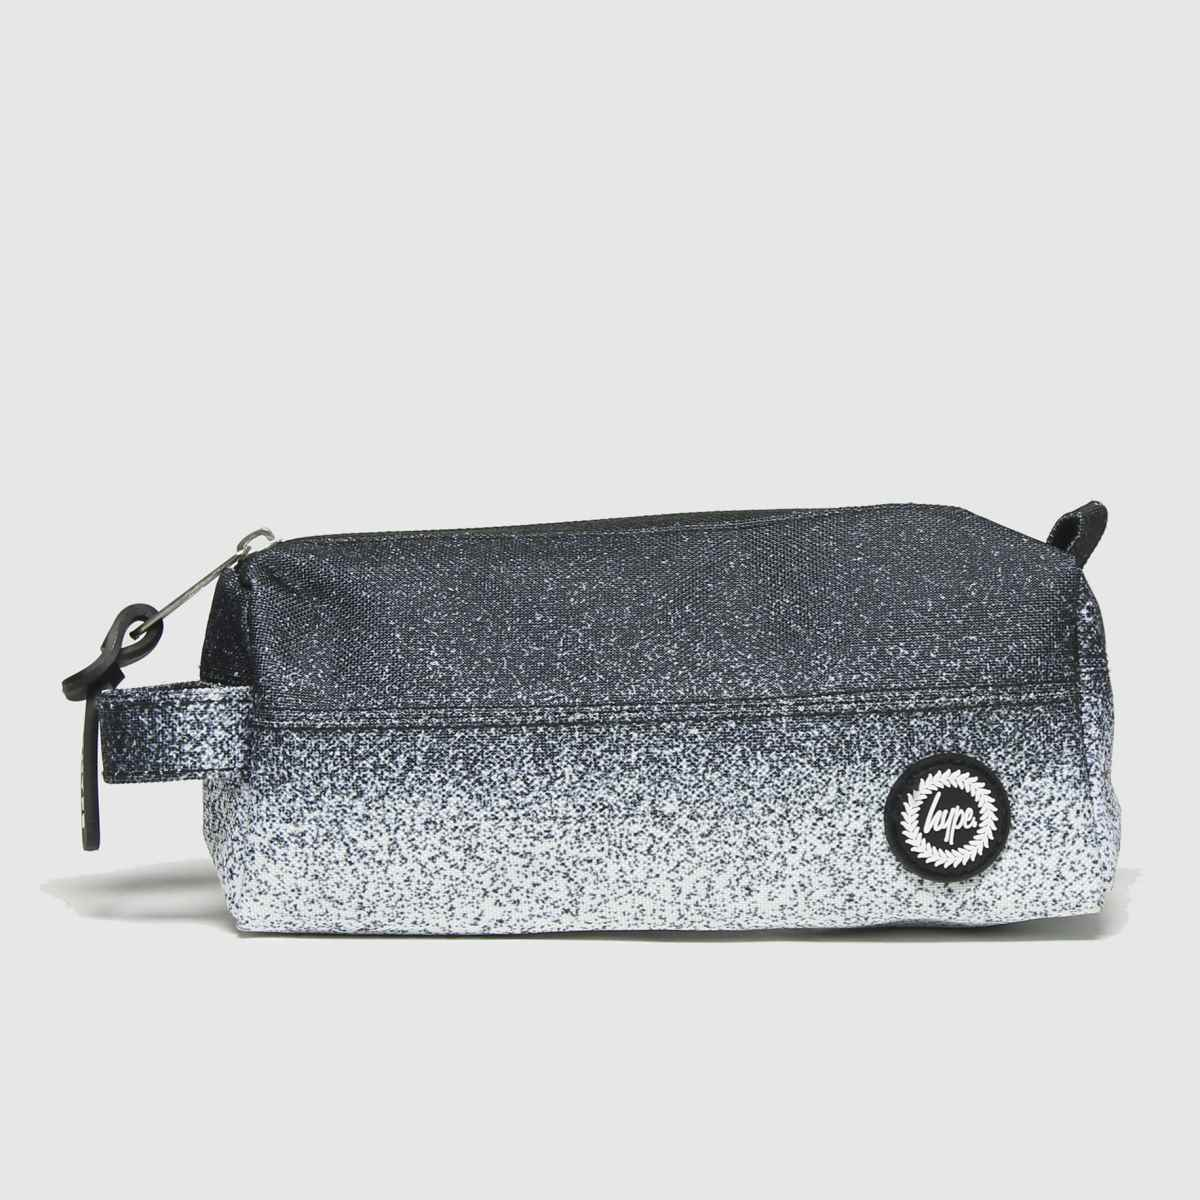 Hype Black & White Pencil Case